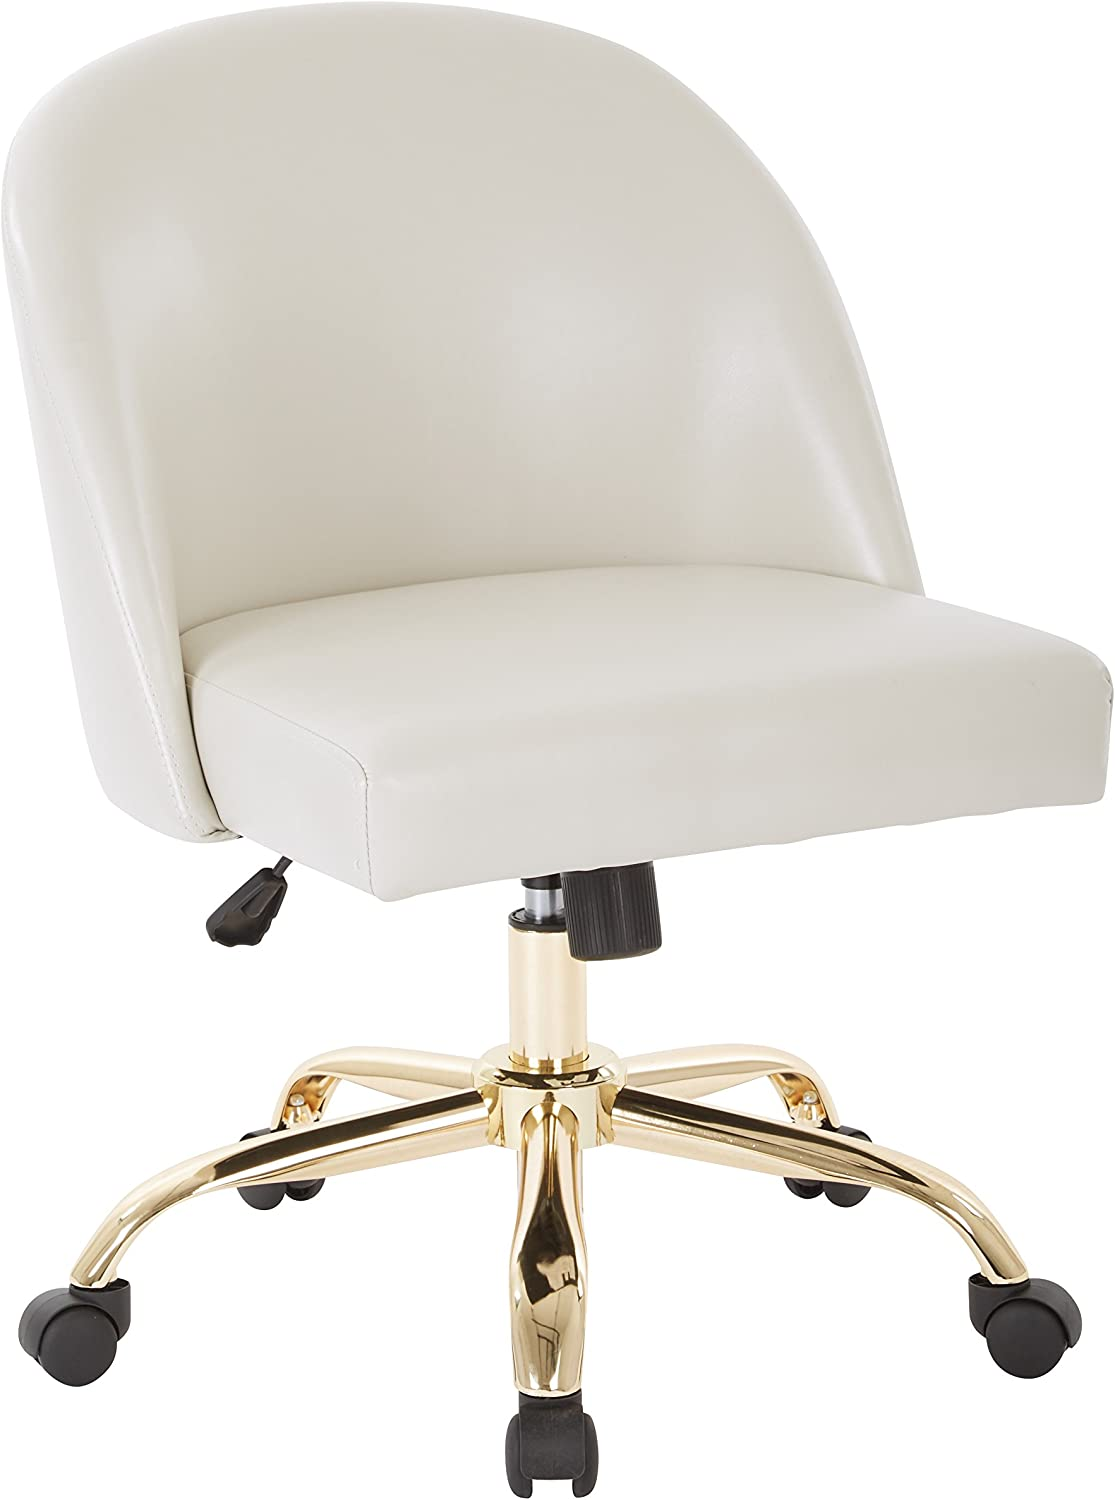 OSP Home Furnishings Layton Office Chair, Cream